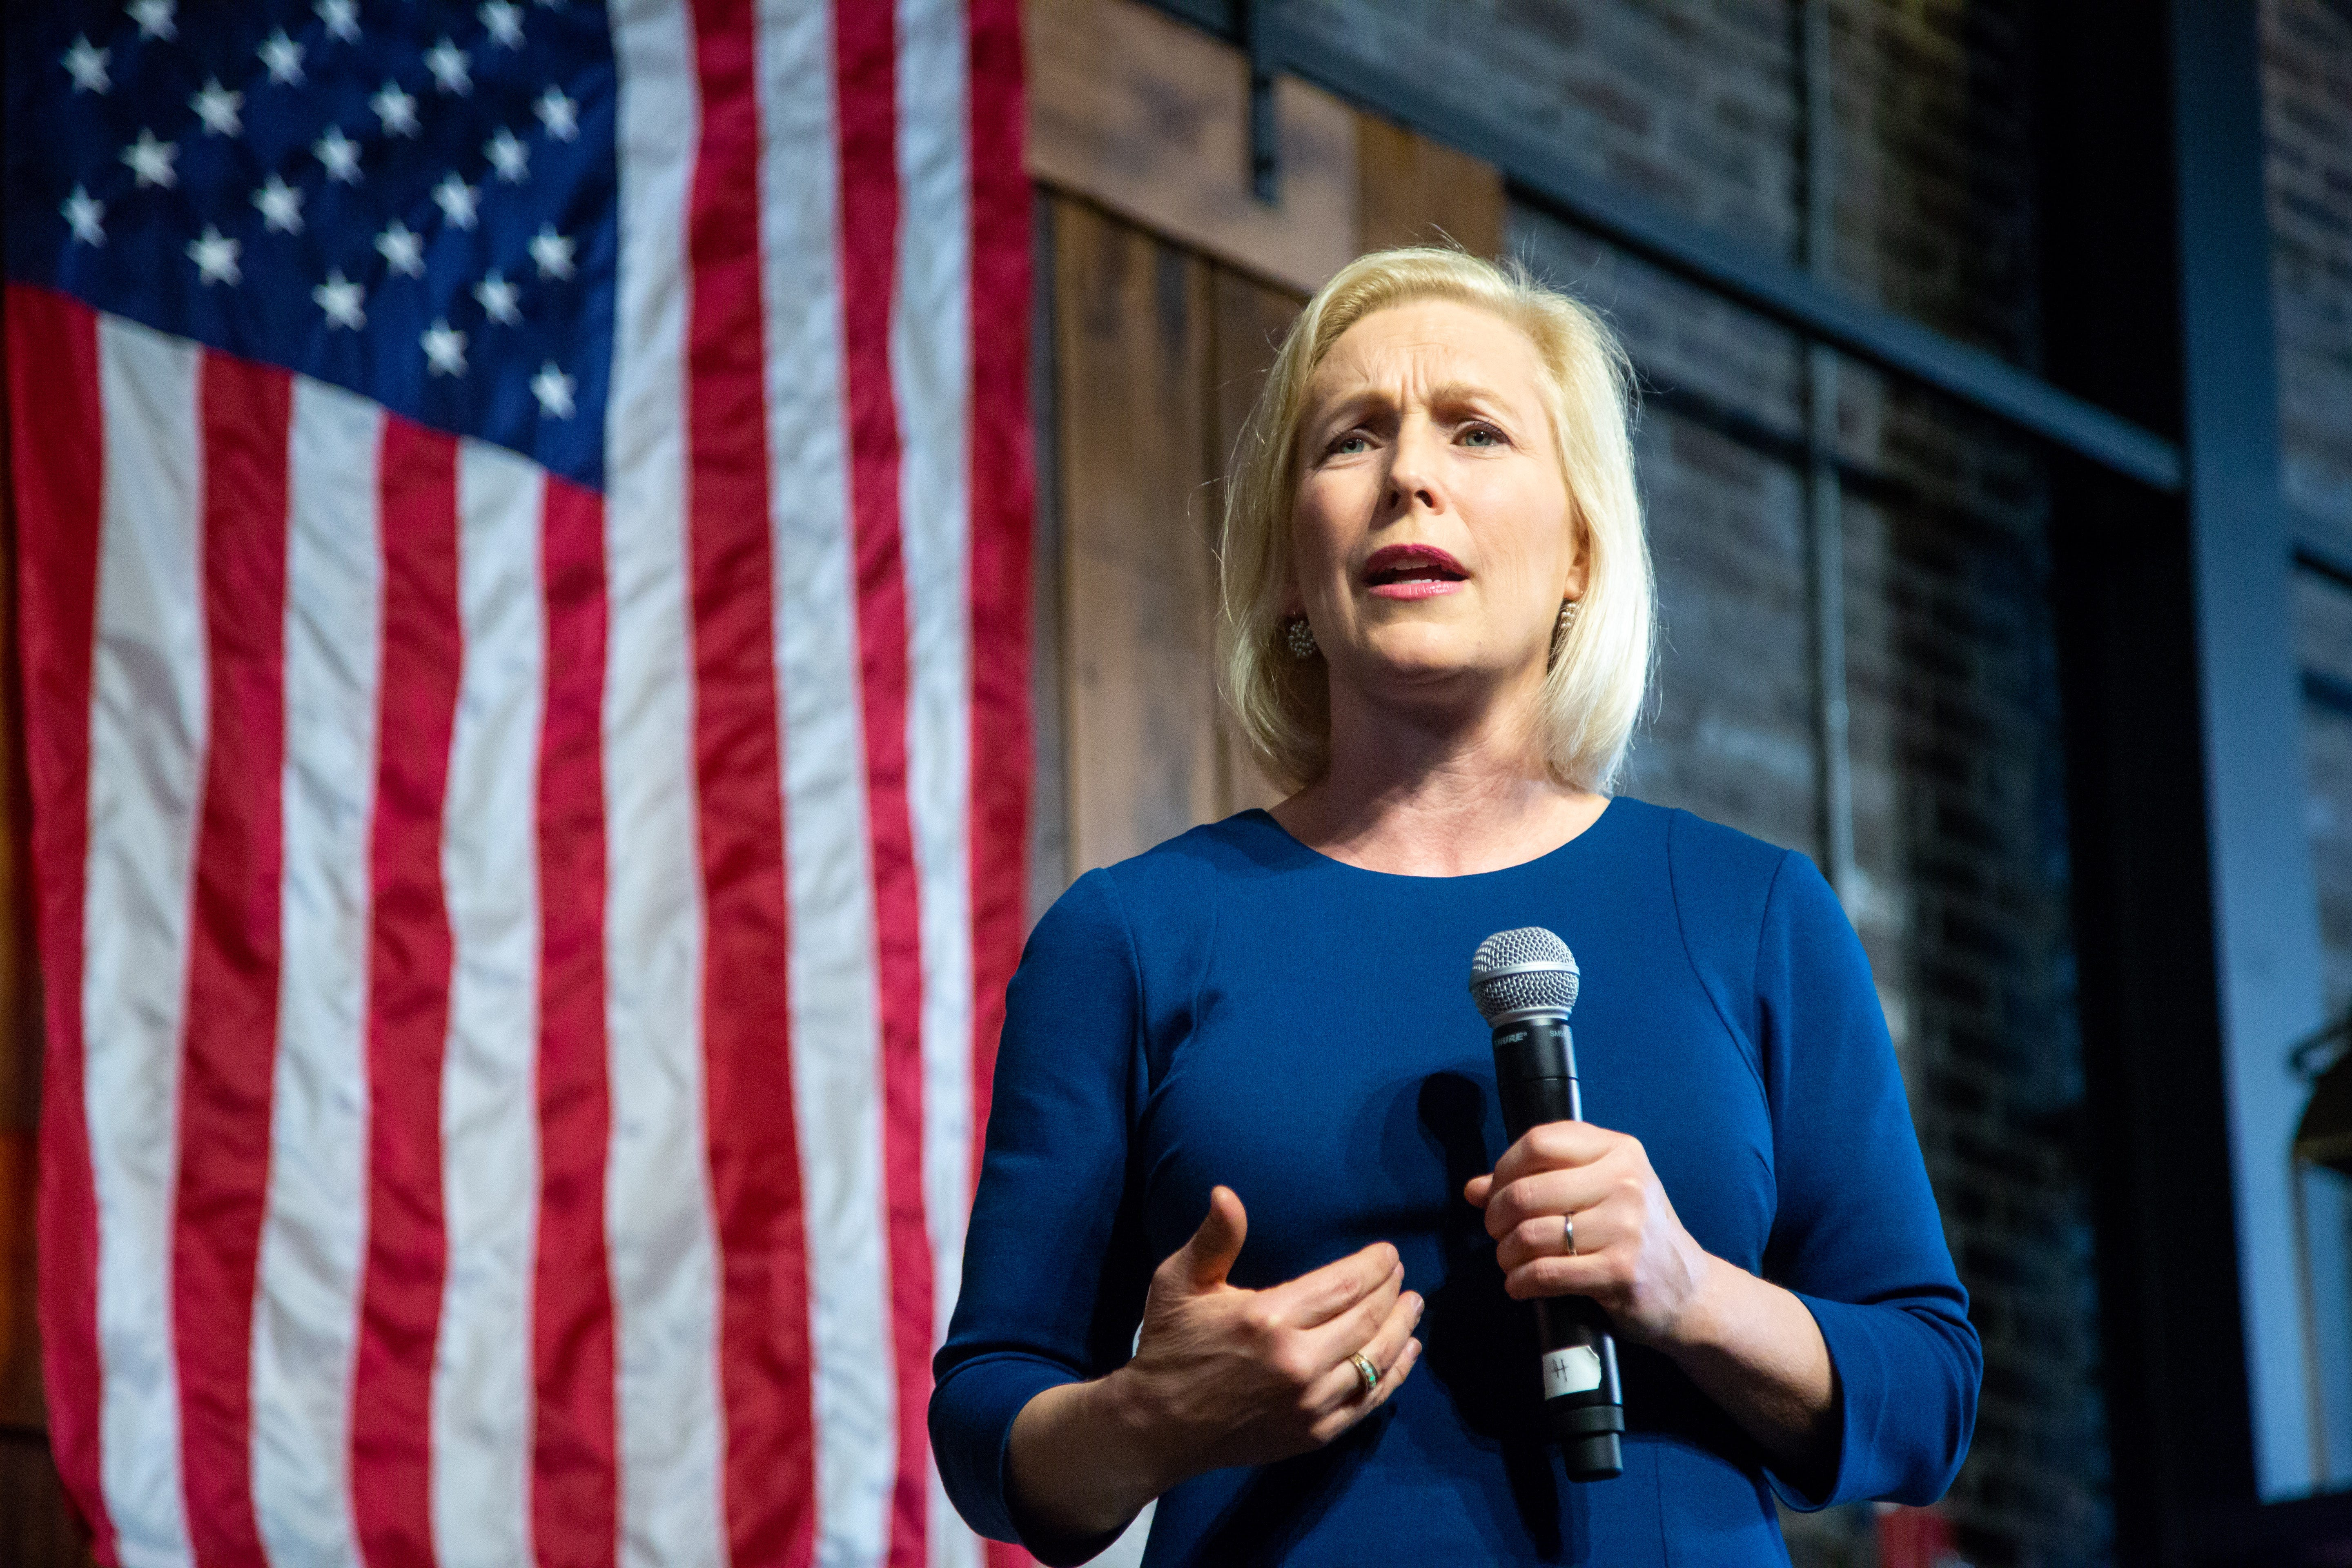 Presidential candidate Kirsten Gillibrand meets with Register today at 11 a.m. CT